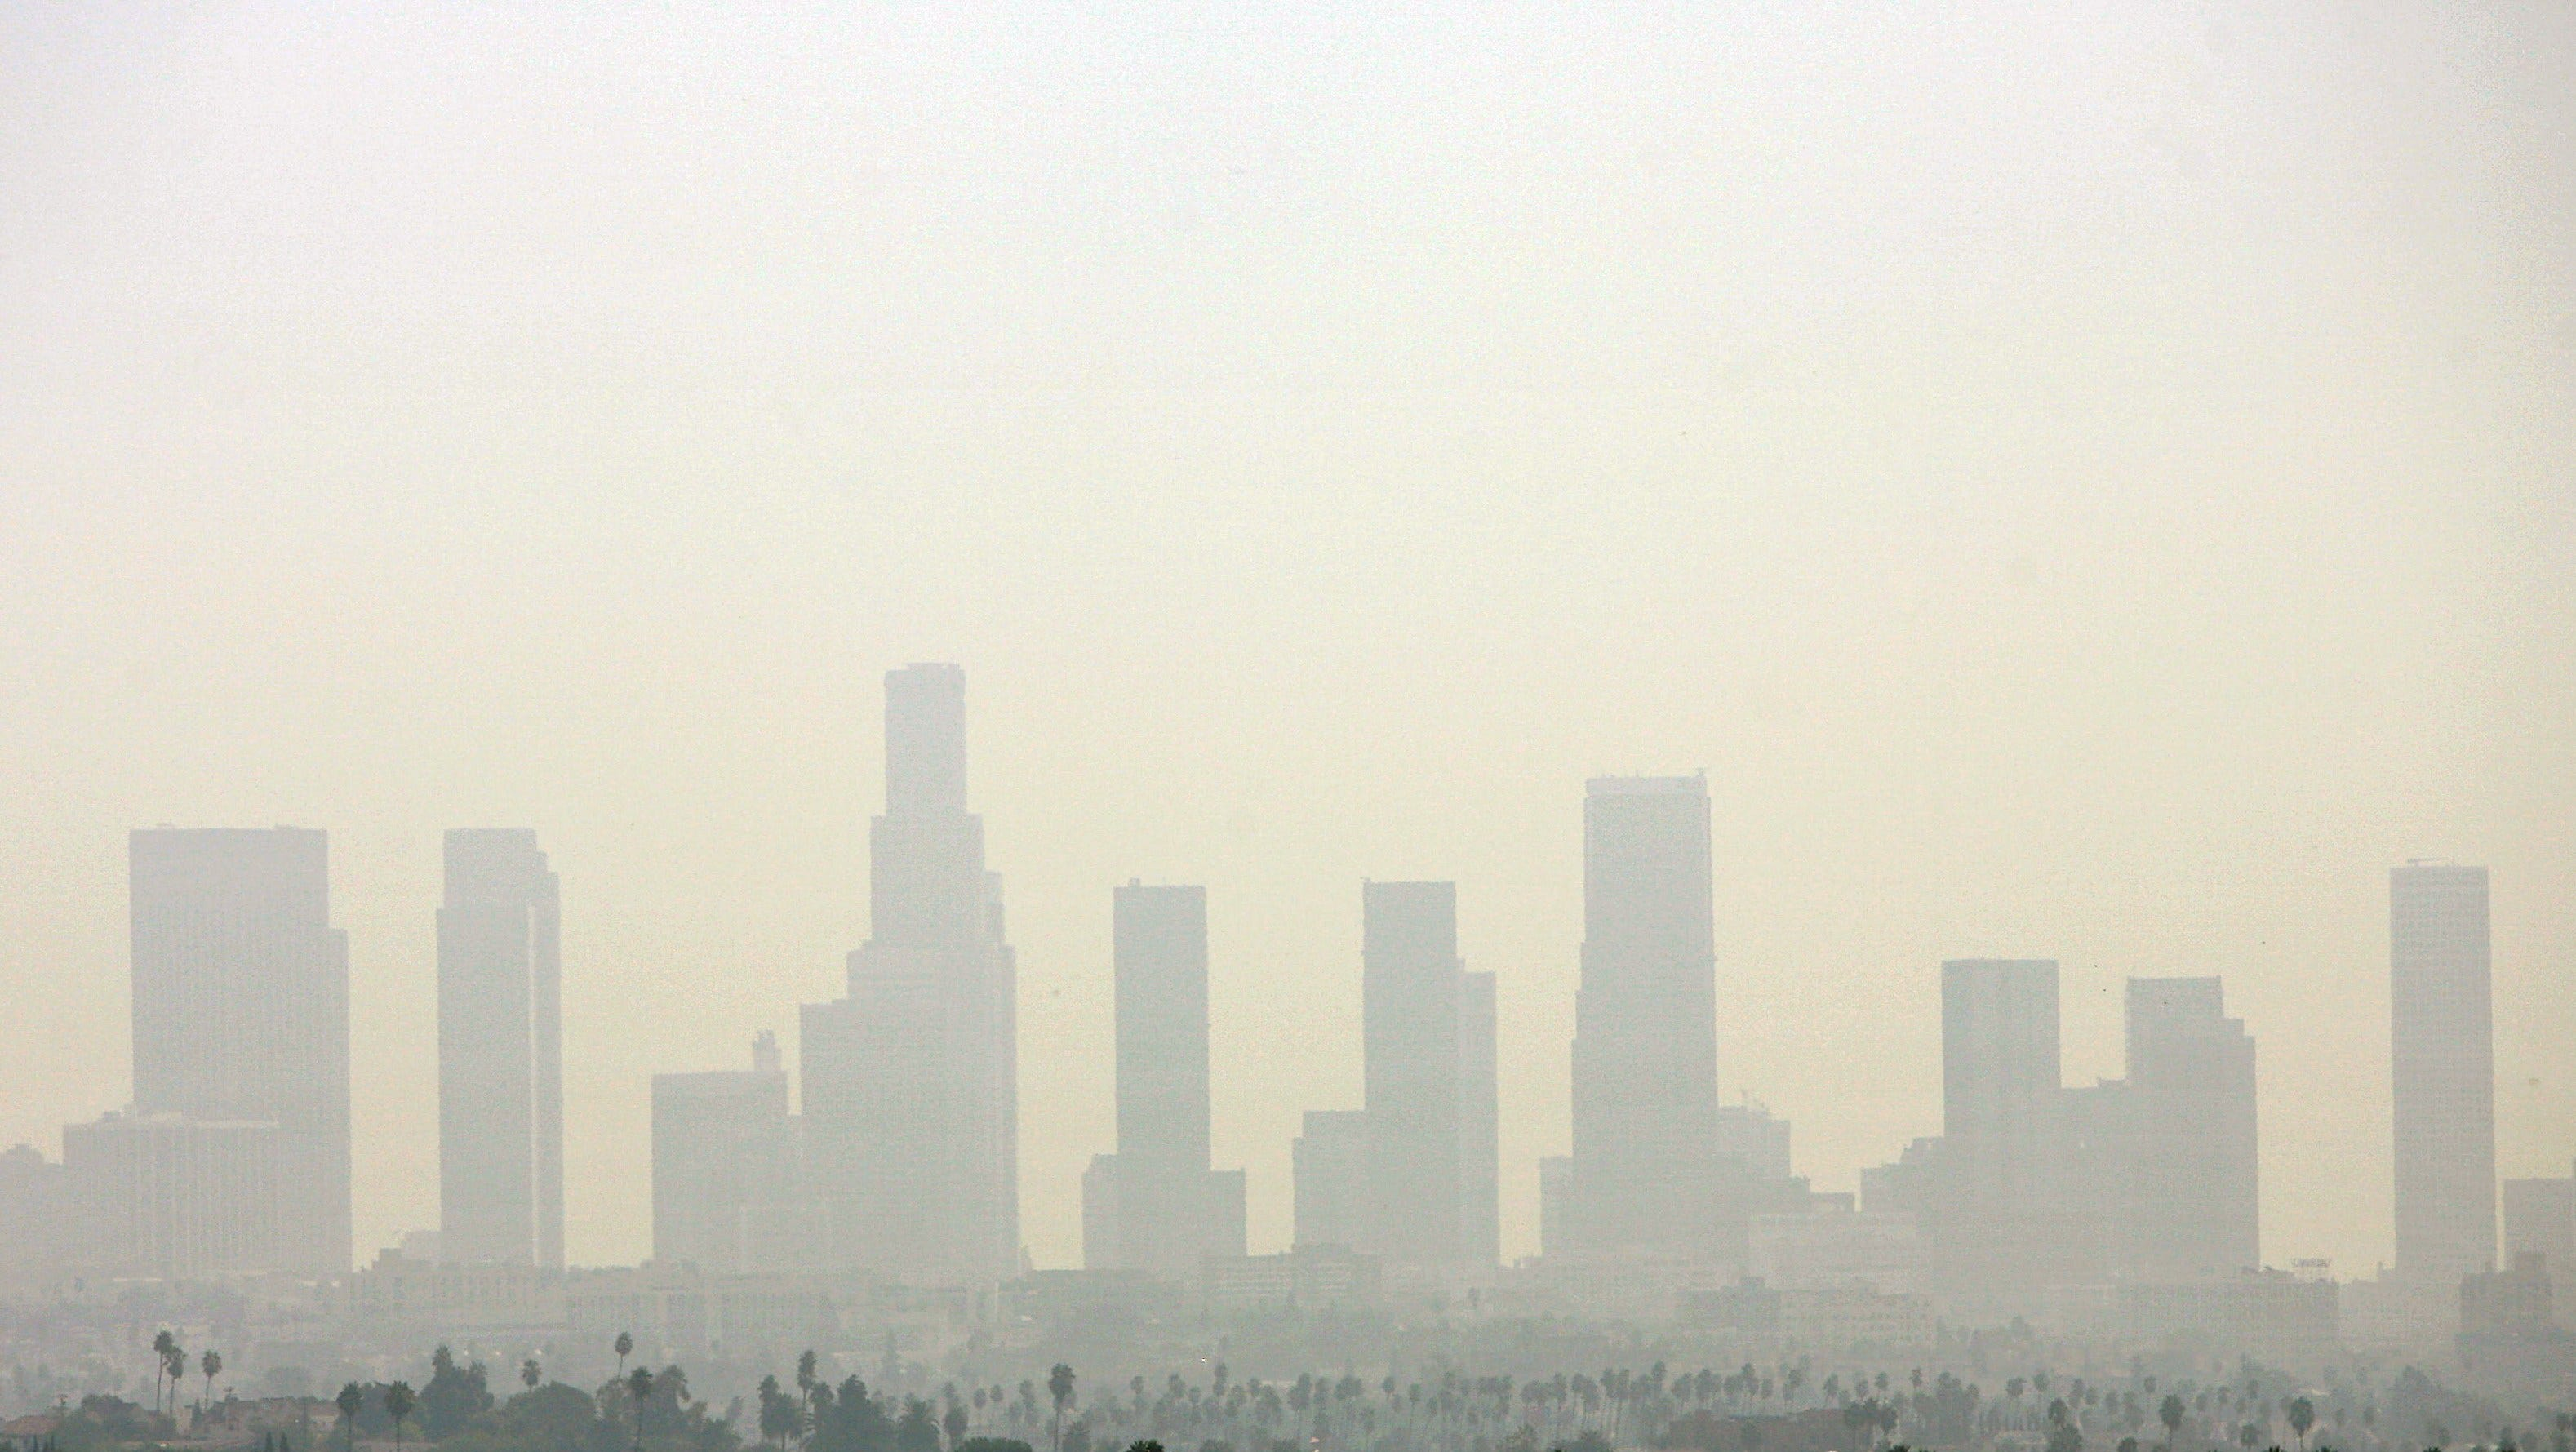 A file picture taken on September 20, 2006 shows the air pollution over Downtown Los Angeles.